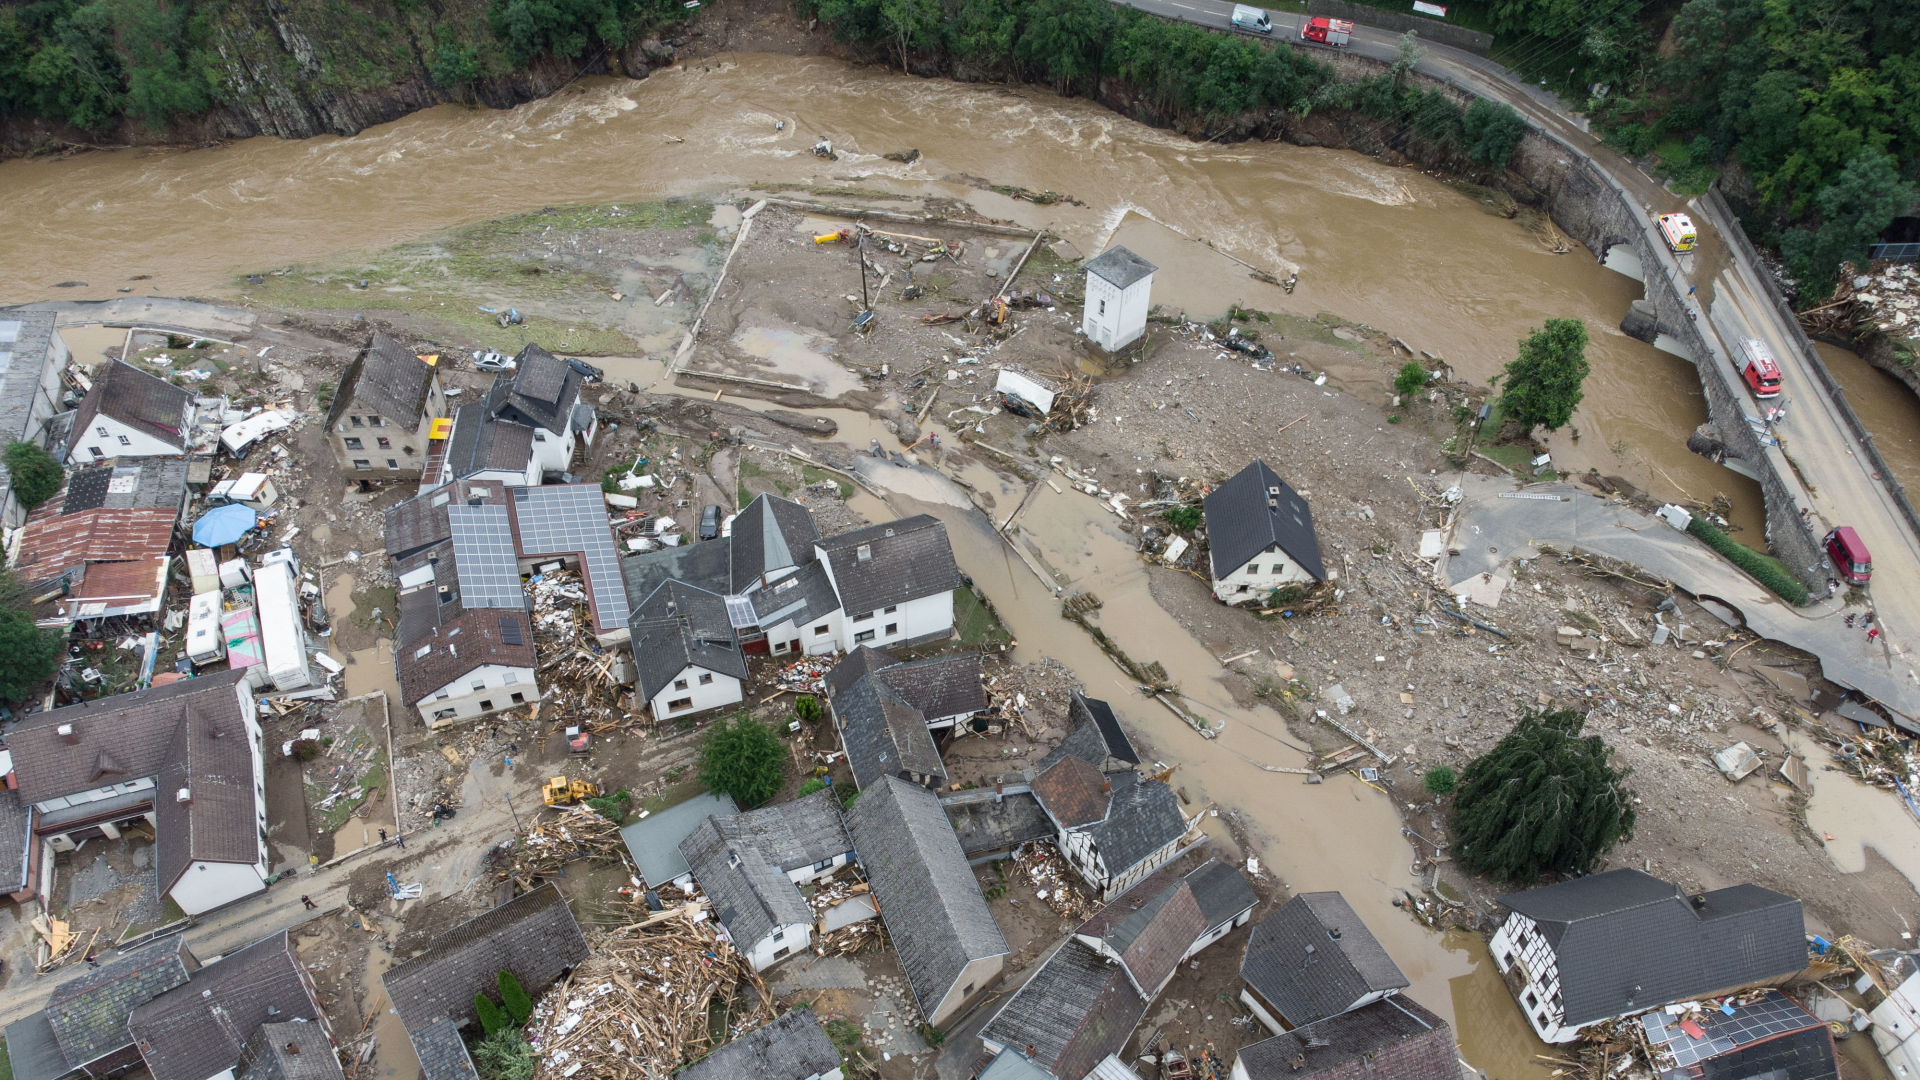 After the flood: environmental groups urge to rethink when it comes to reconstruction